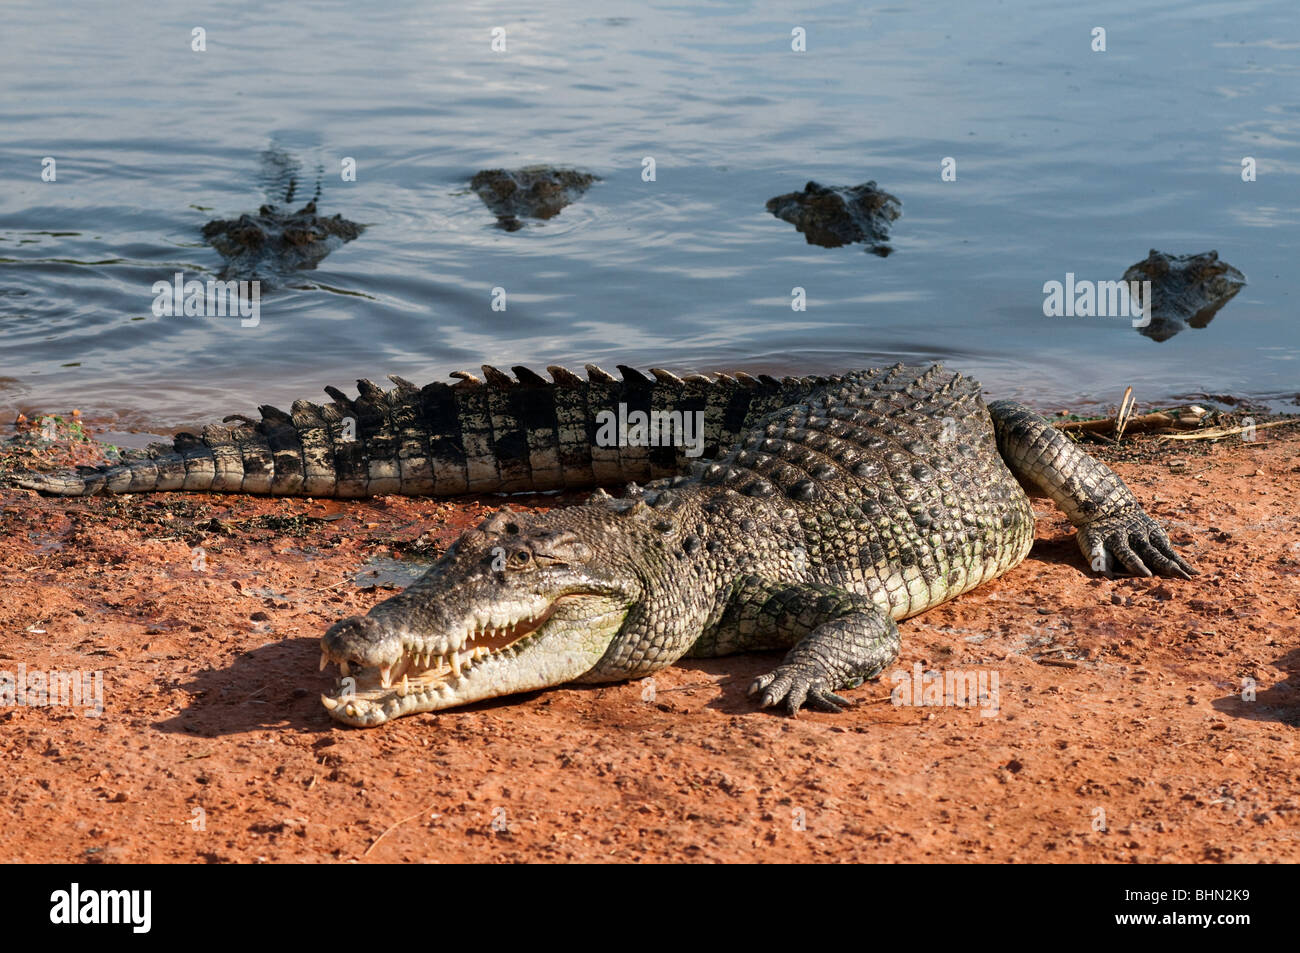 Australian male Saltwater Crocodile waiting to be fed with his harem of females in the background - Stock Image